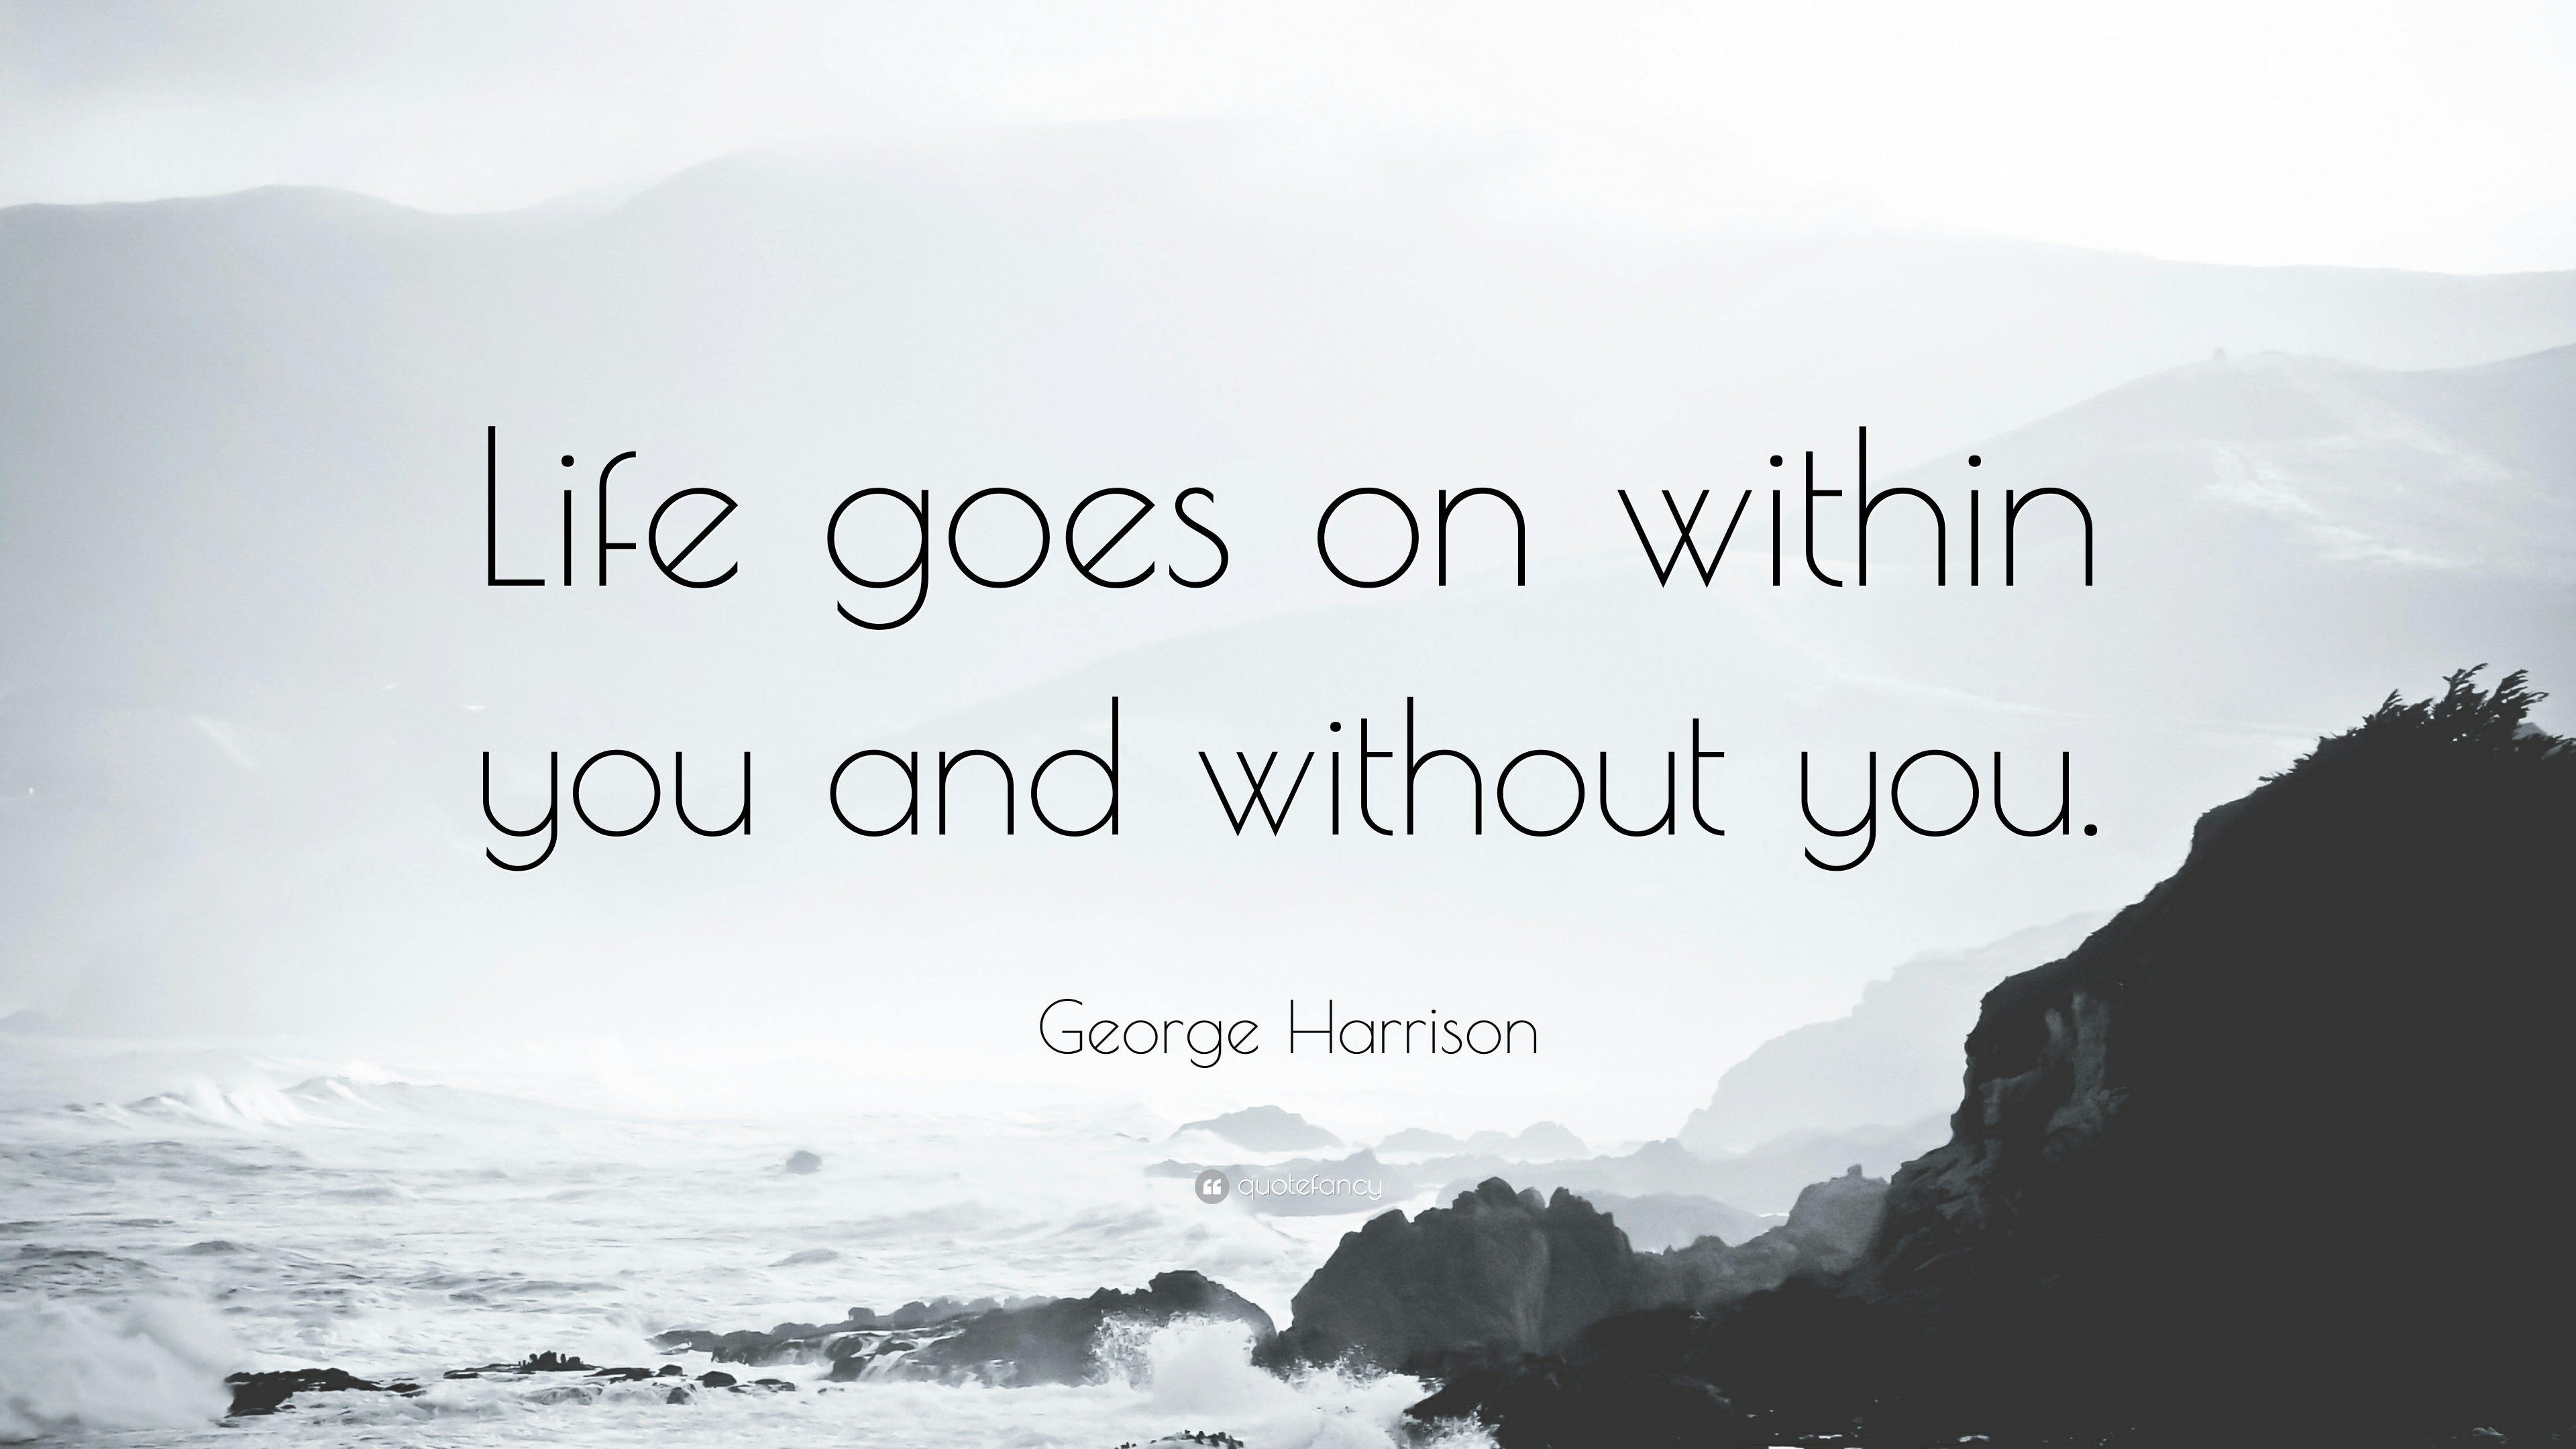 Elegant George Harrison Quote: U201cLife Goes On Within You And Without You.u201d